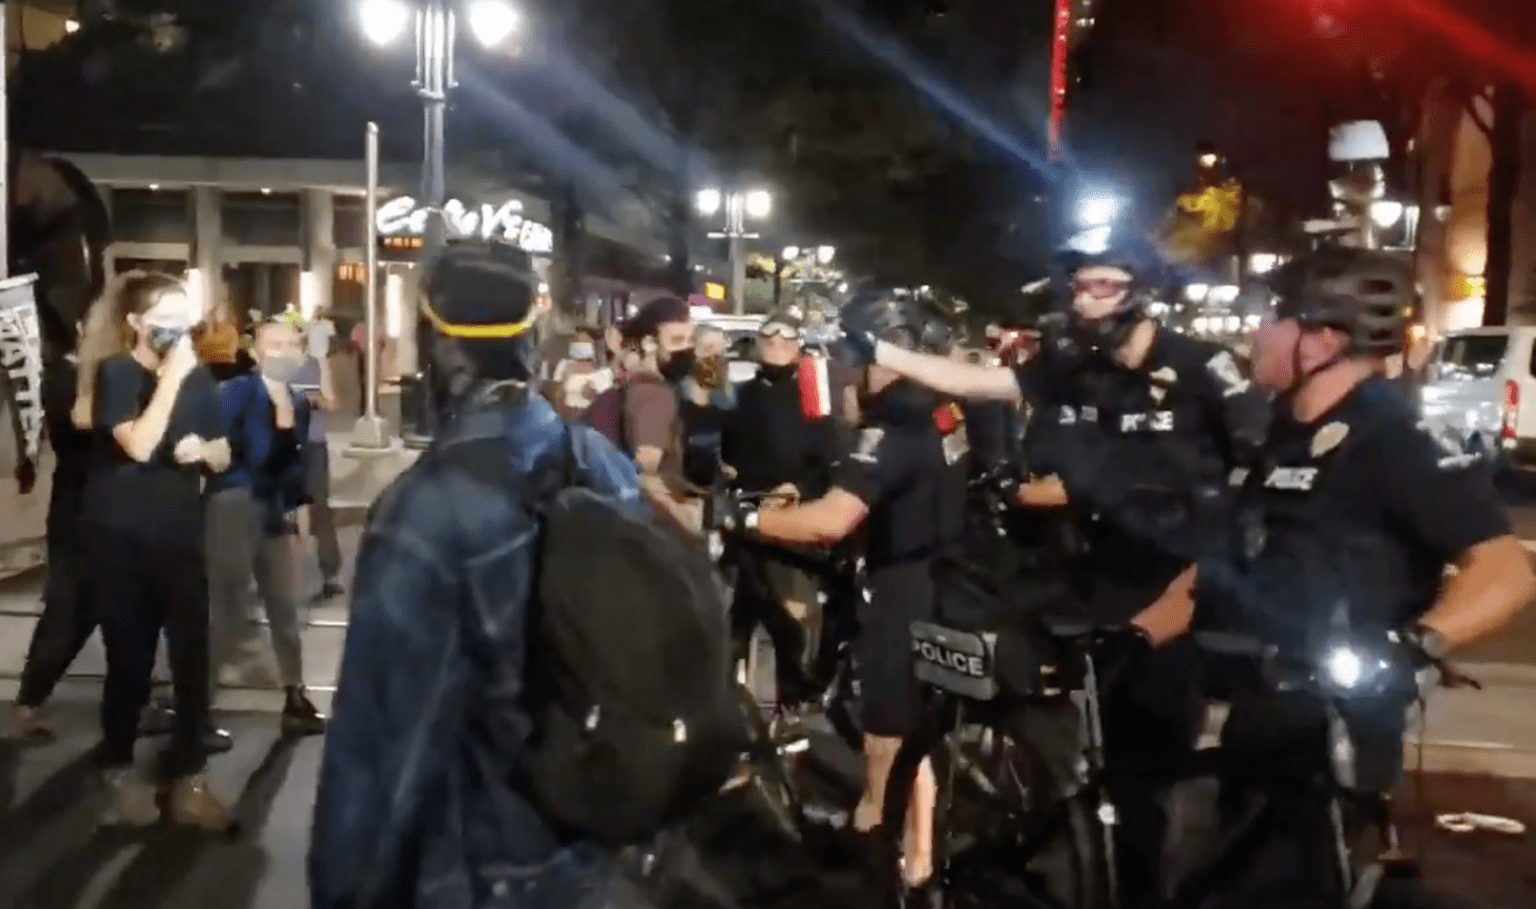 Anti-Trump protests at RNC turn violent: Officers assaulted, protesters arrested